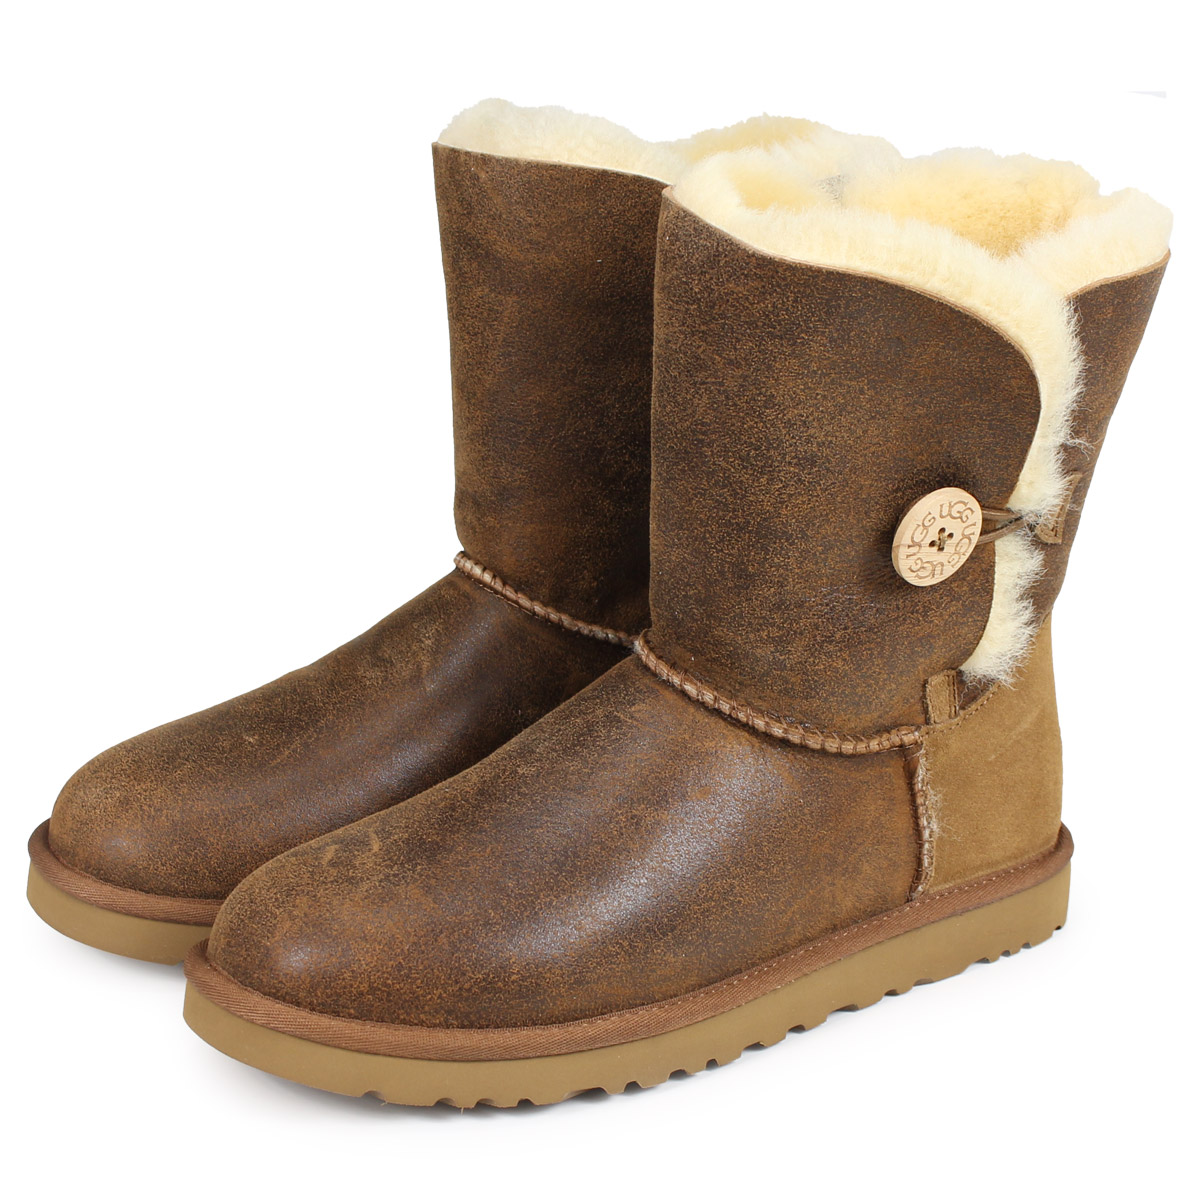 72f72f22178 4 color UGG UGG women's Bailey button bomber boots 5838 WOMENS BAILEY  BUTTON BOMBER Womens 2014 new Sheepskin [regular]